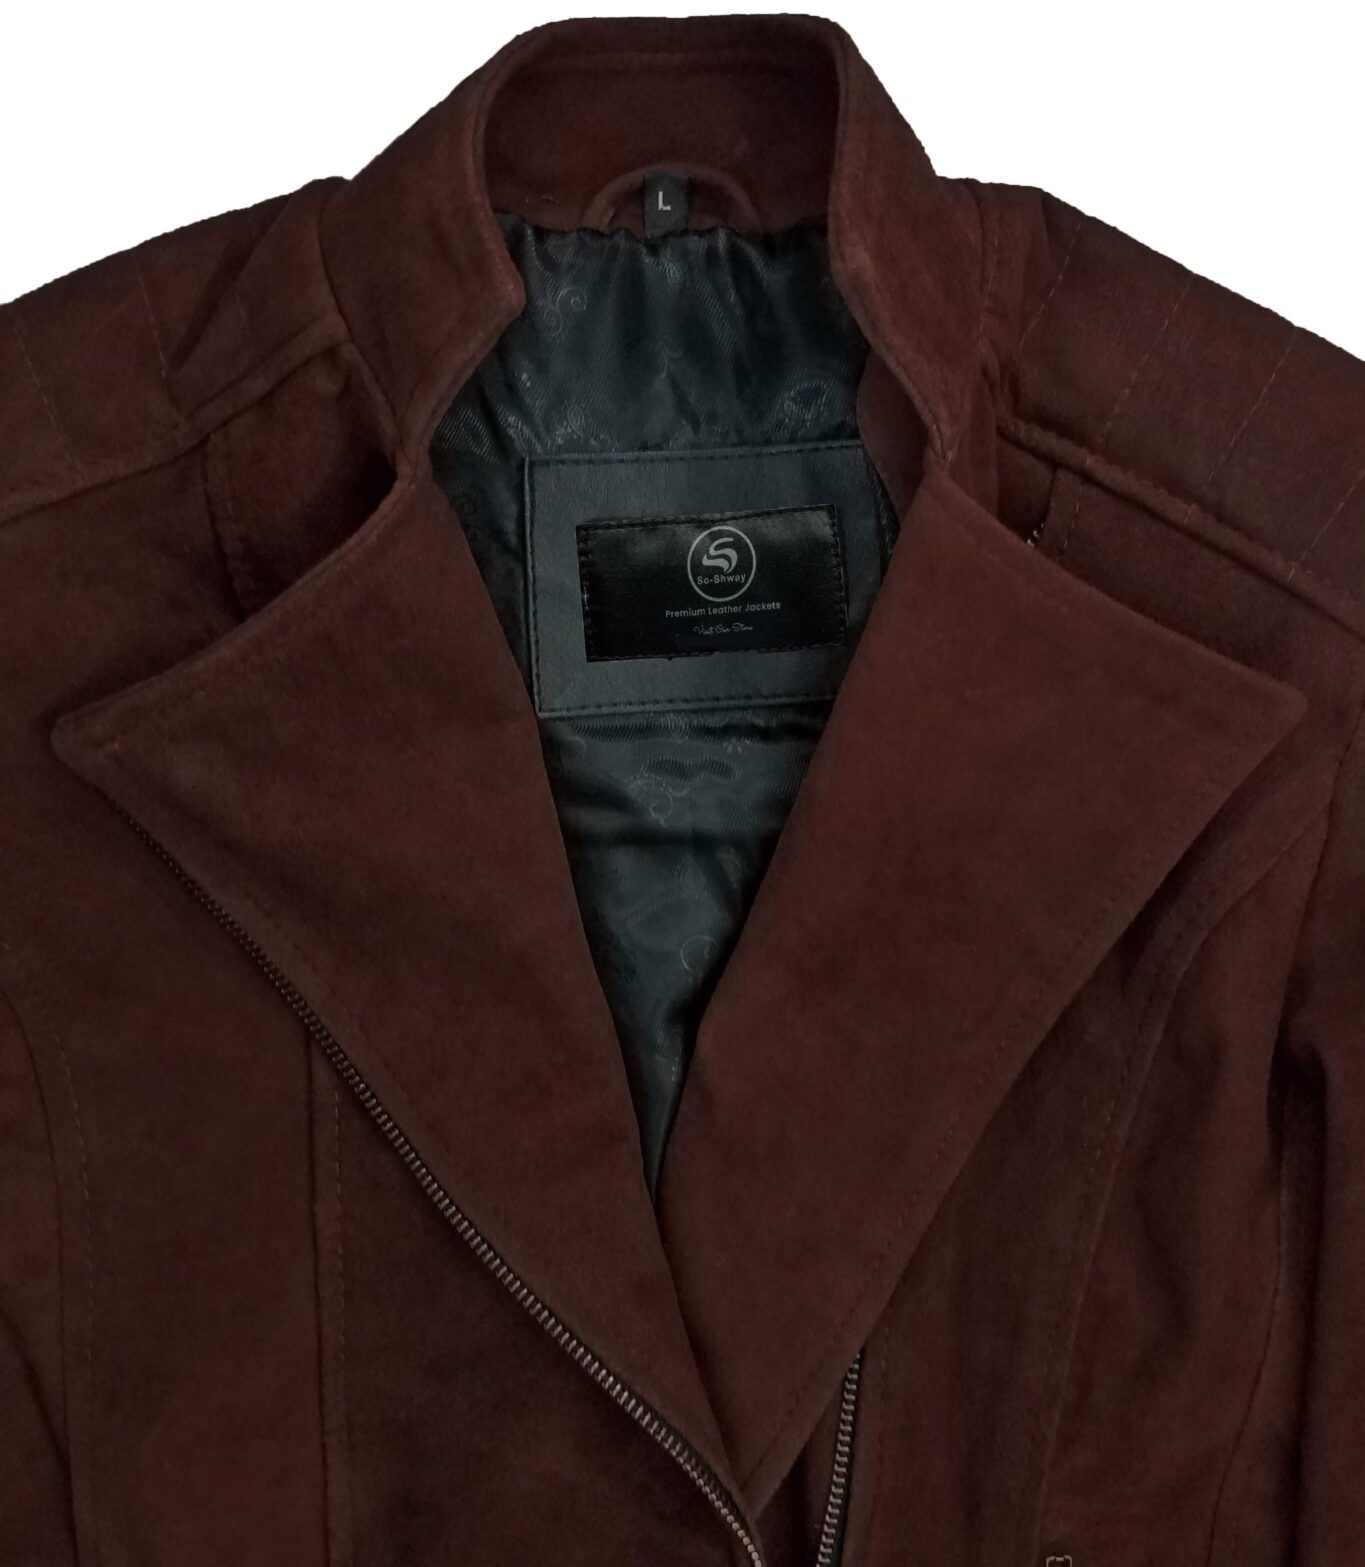 Womens Dark Brown Suede Leather Jacket